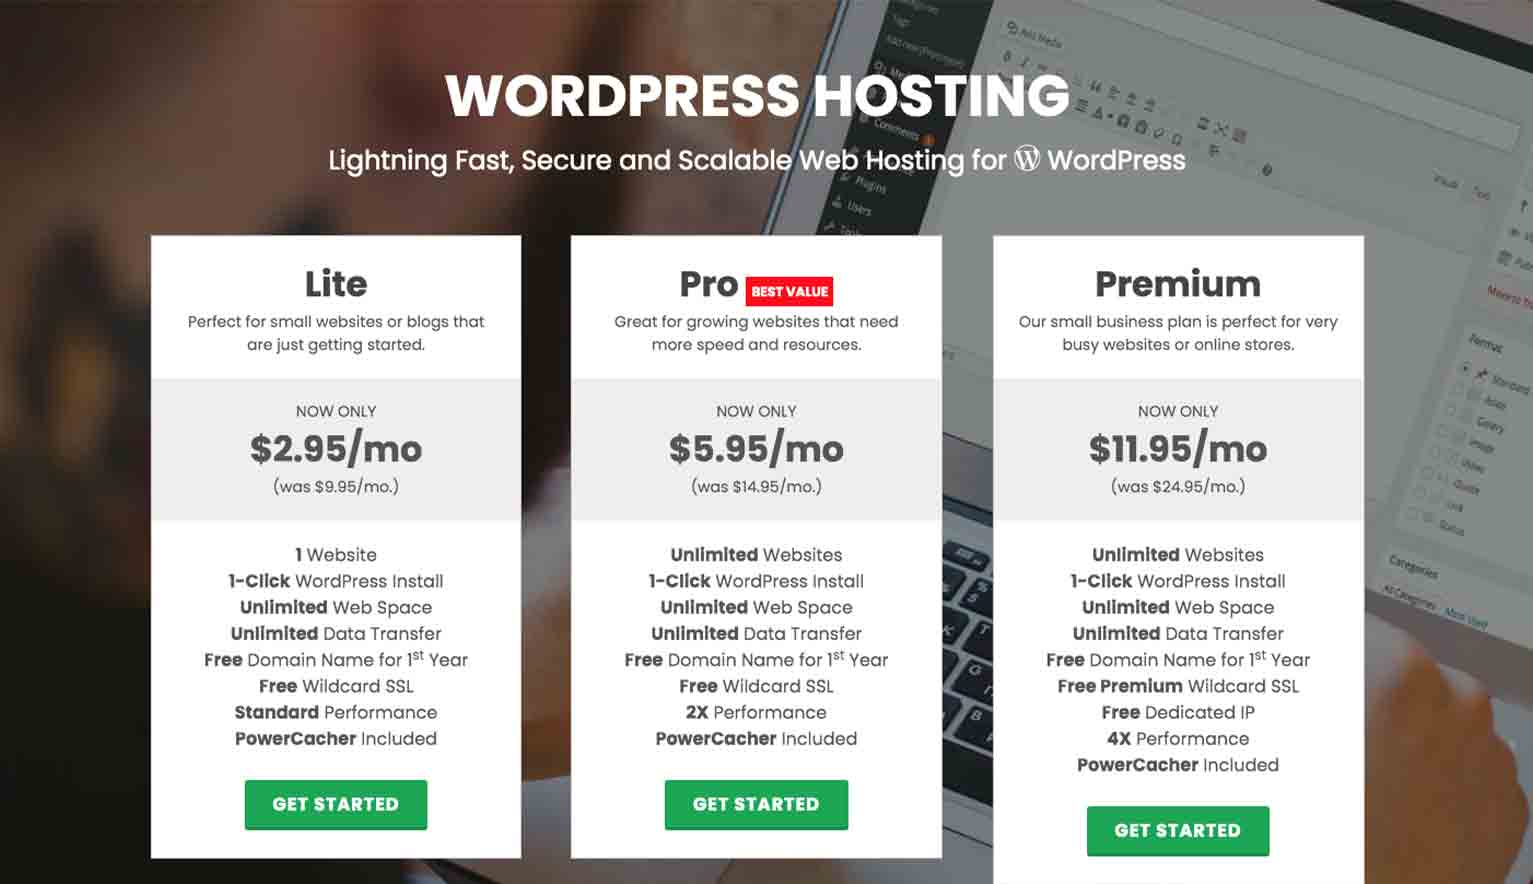 Here's an example of a landing page from web-hosting company GreenGeeks that offers a comprehensive overview of all their hosting packages.